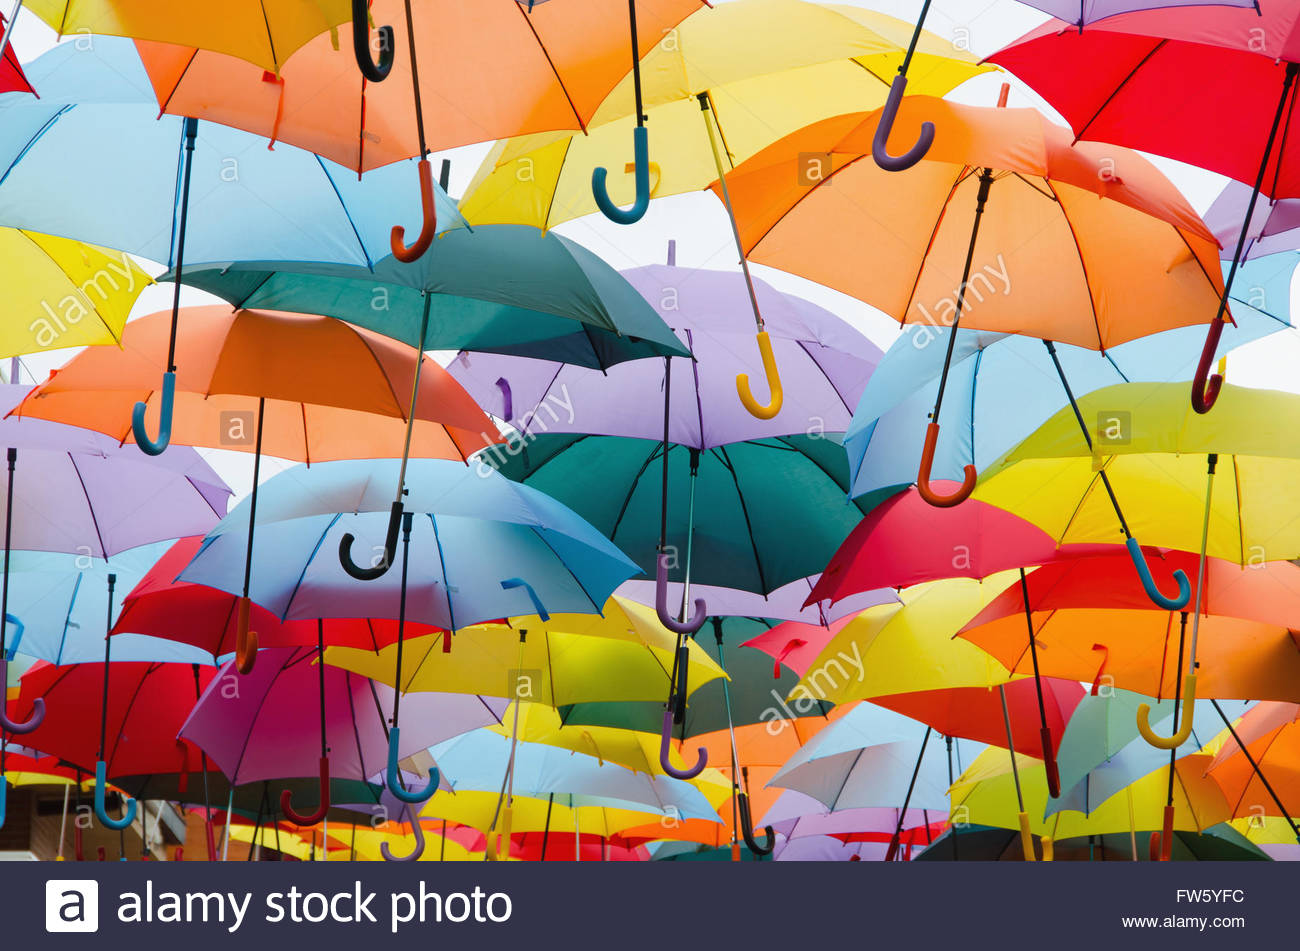 Bright colorful hundreds of umbrellas floating above the street - Stock Image